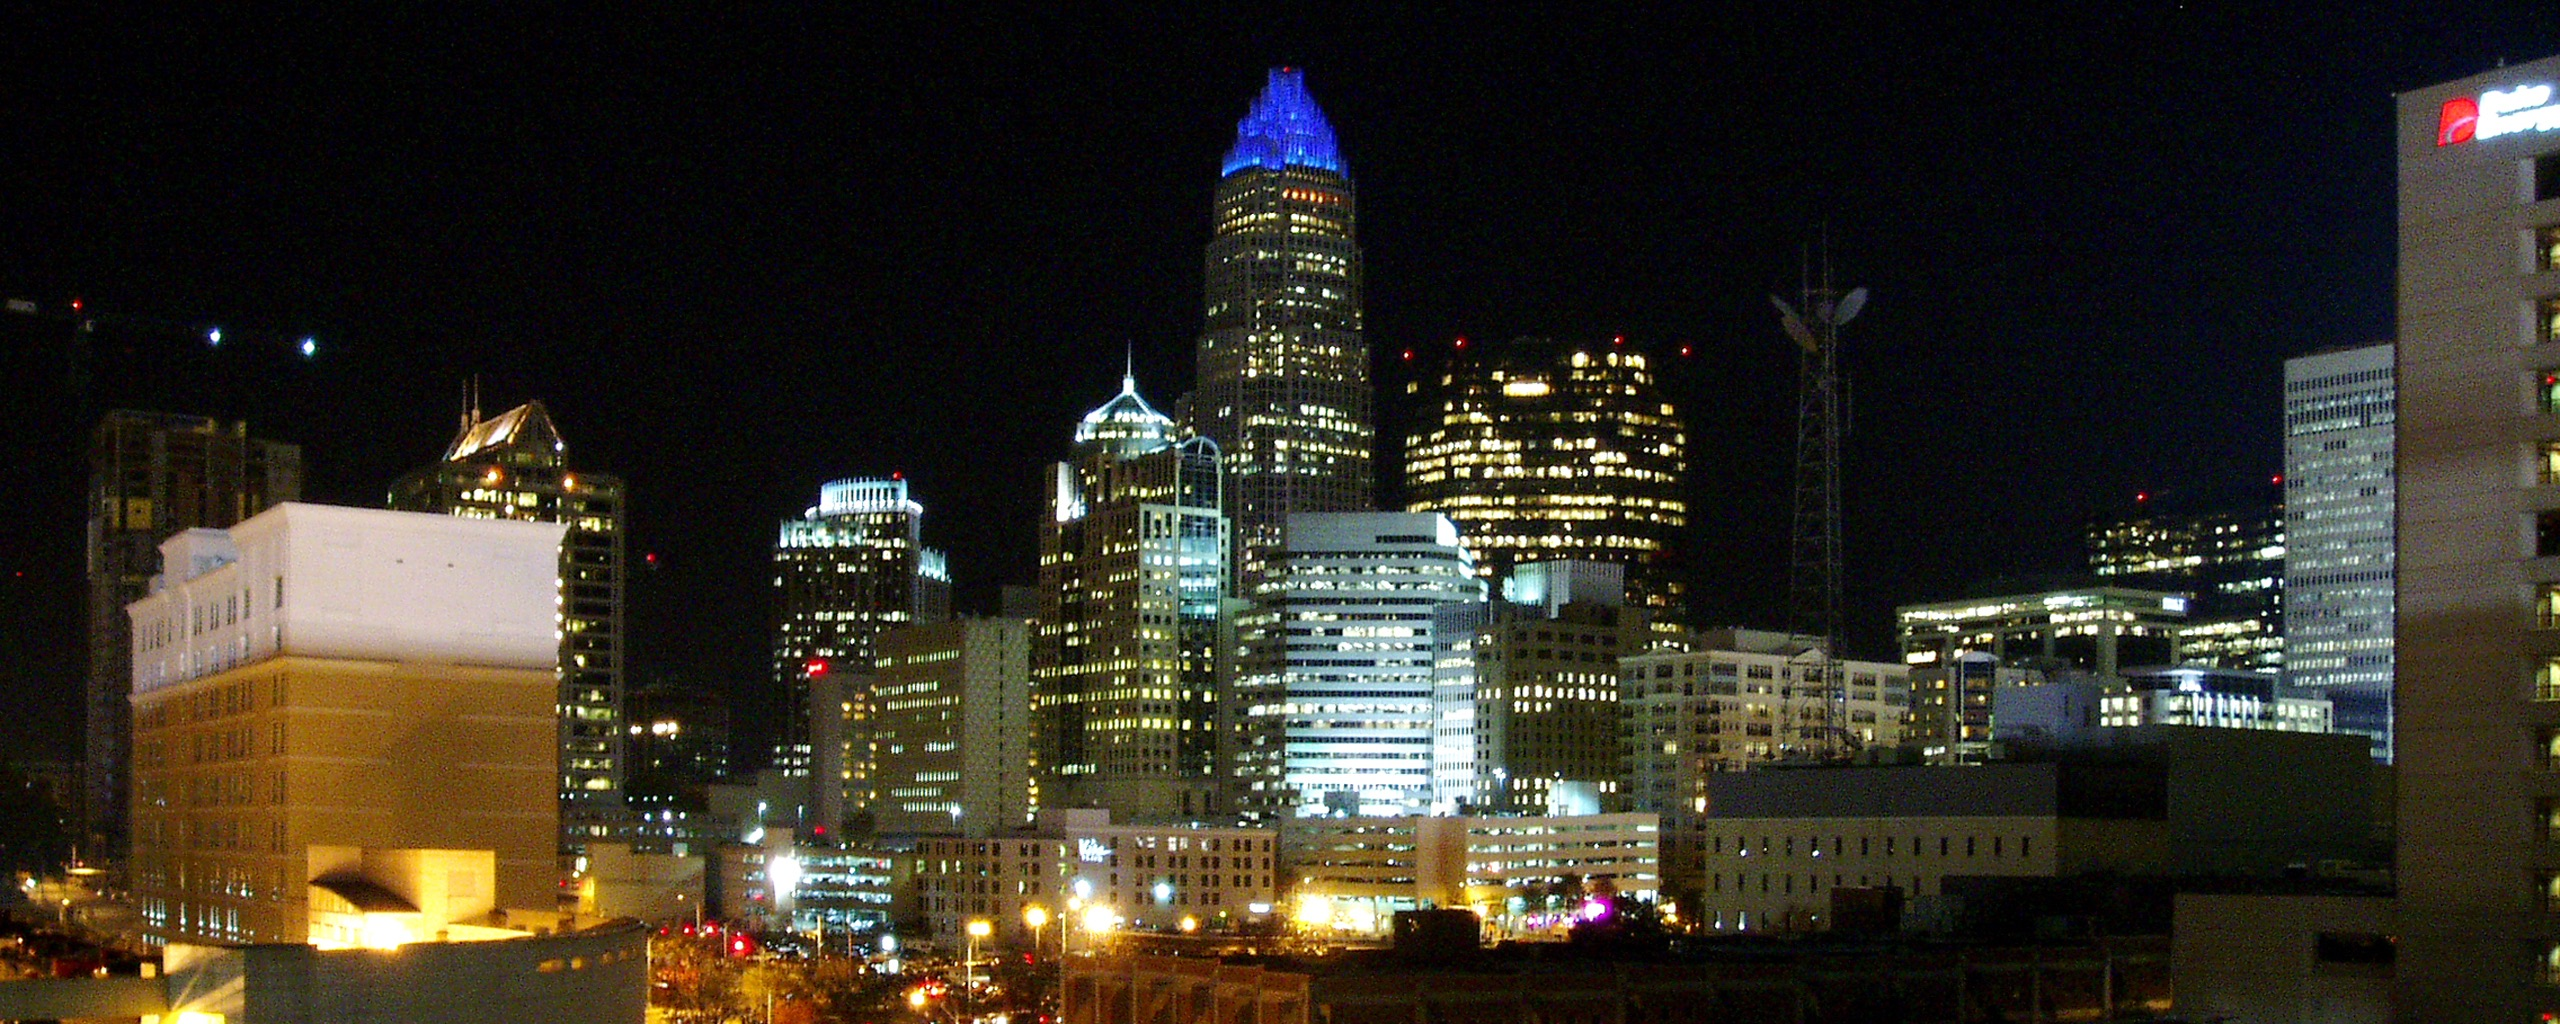 Clinical Massage Therapy School in Beautiful Charlotte, North Carolina